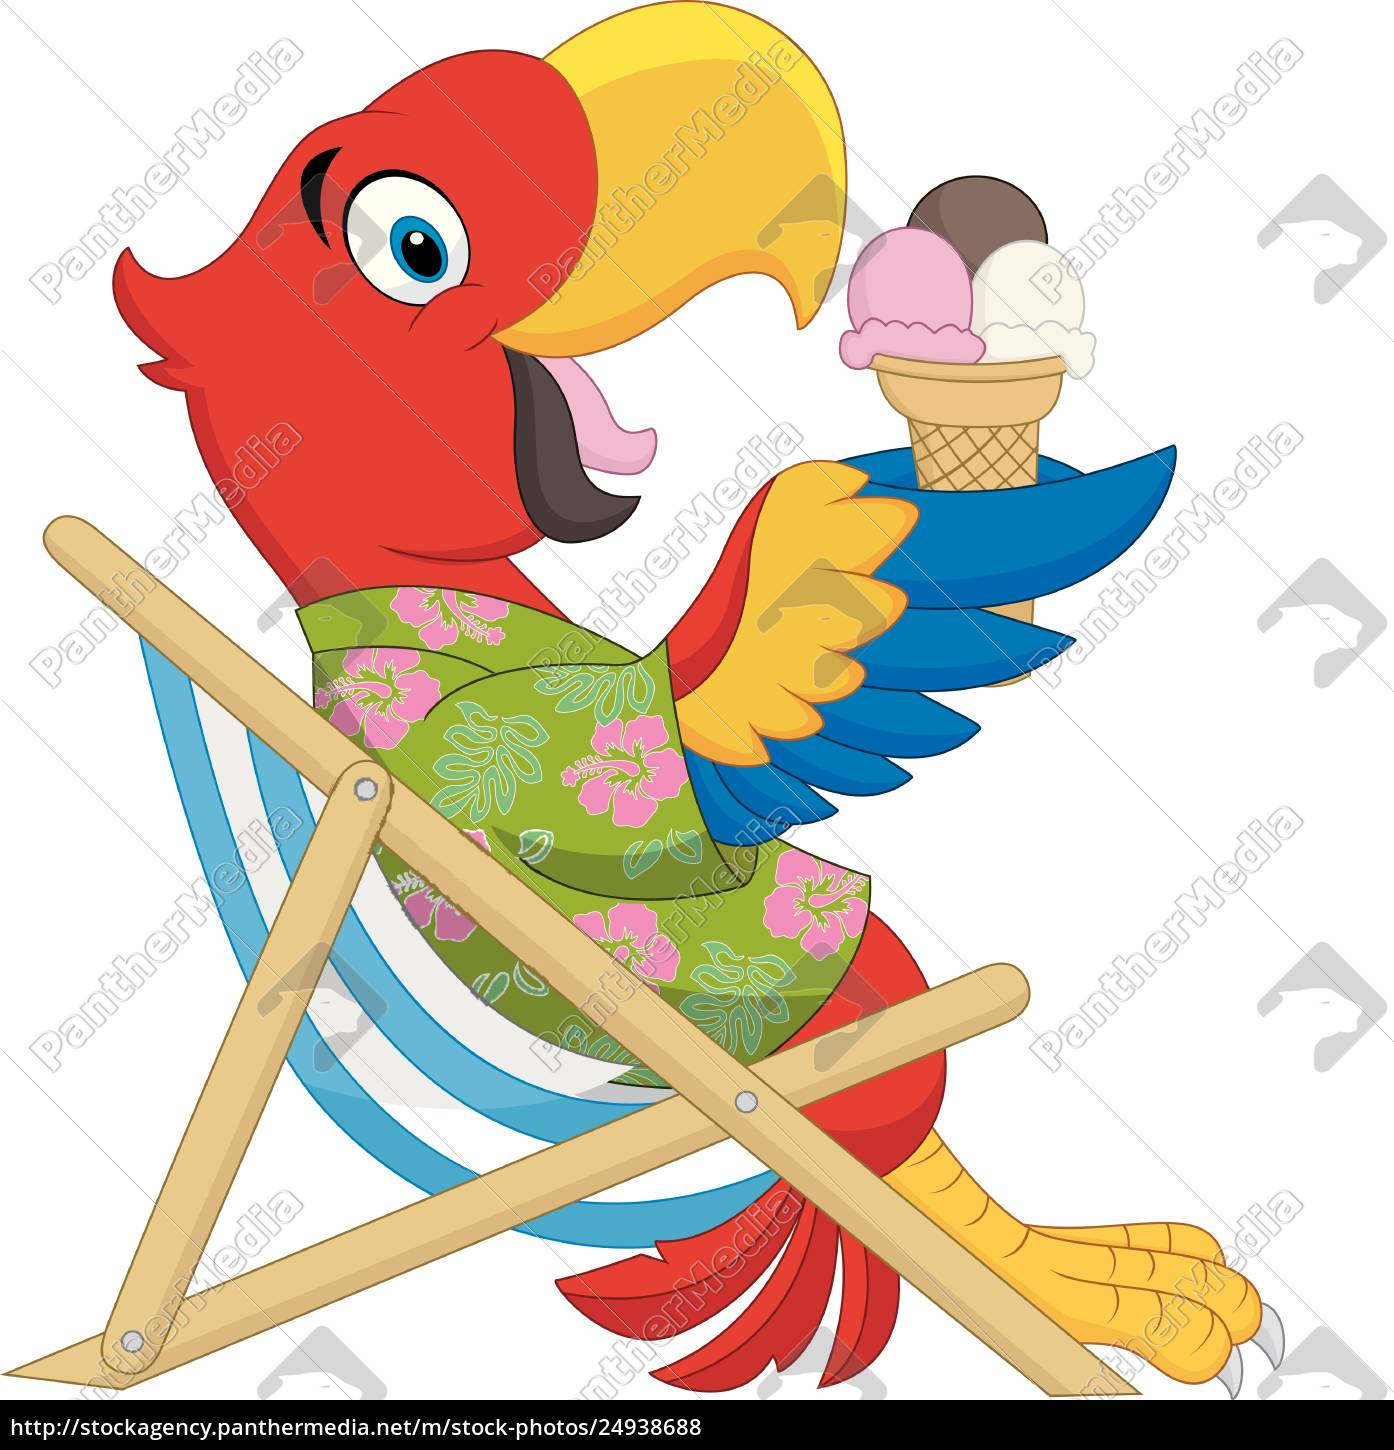 Cartoon Macaw Sitting On Beach Chair And Eating An Ice Royalty Free Photo 24938688 Panthermedia Stock Agency